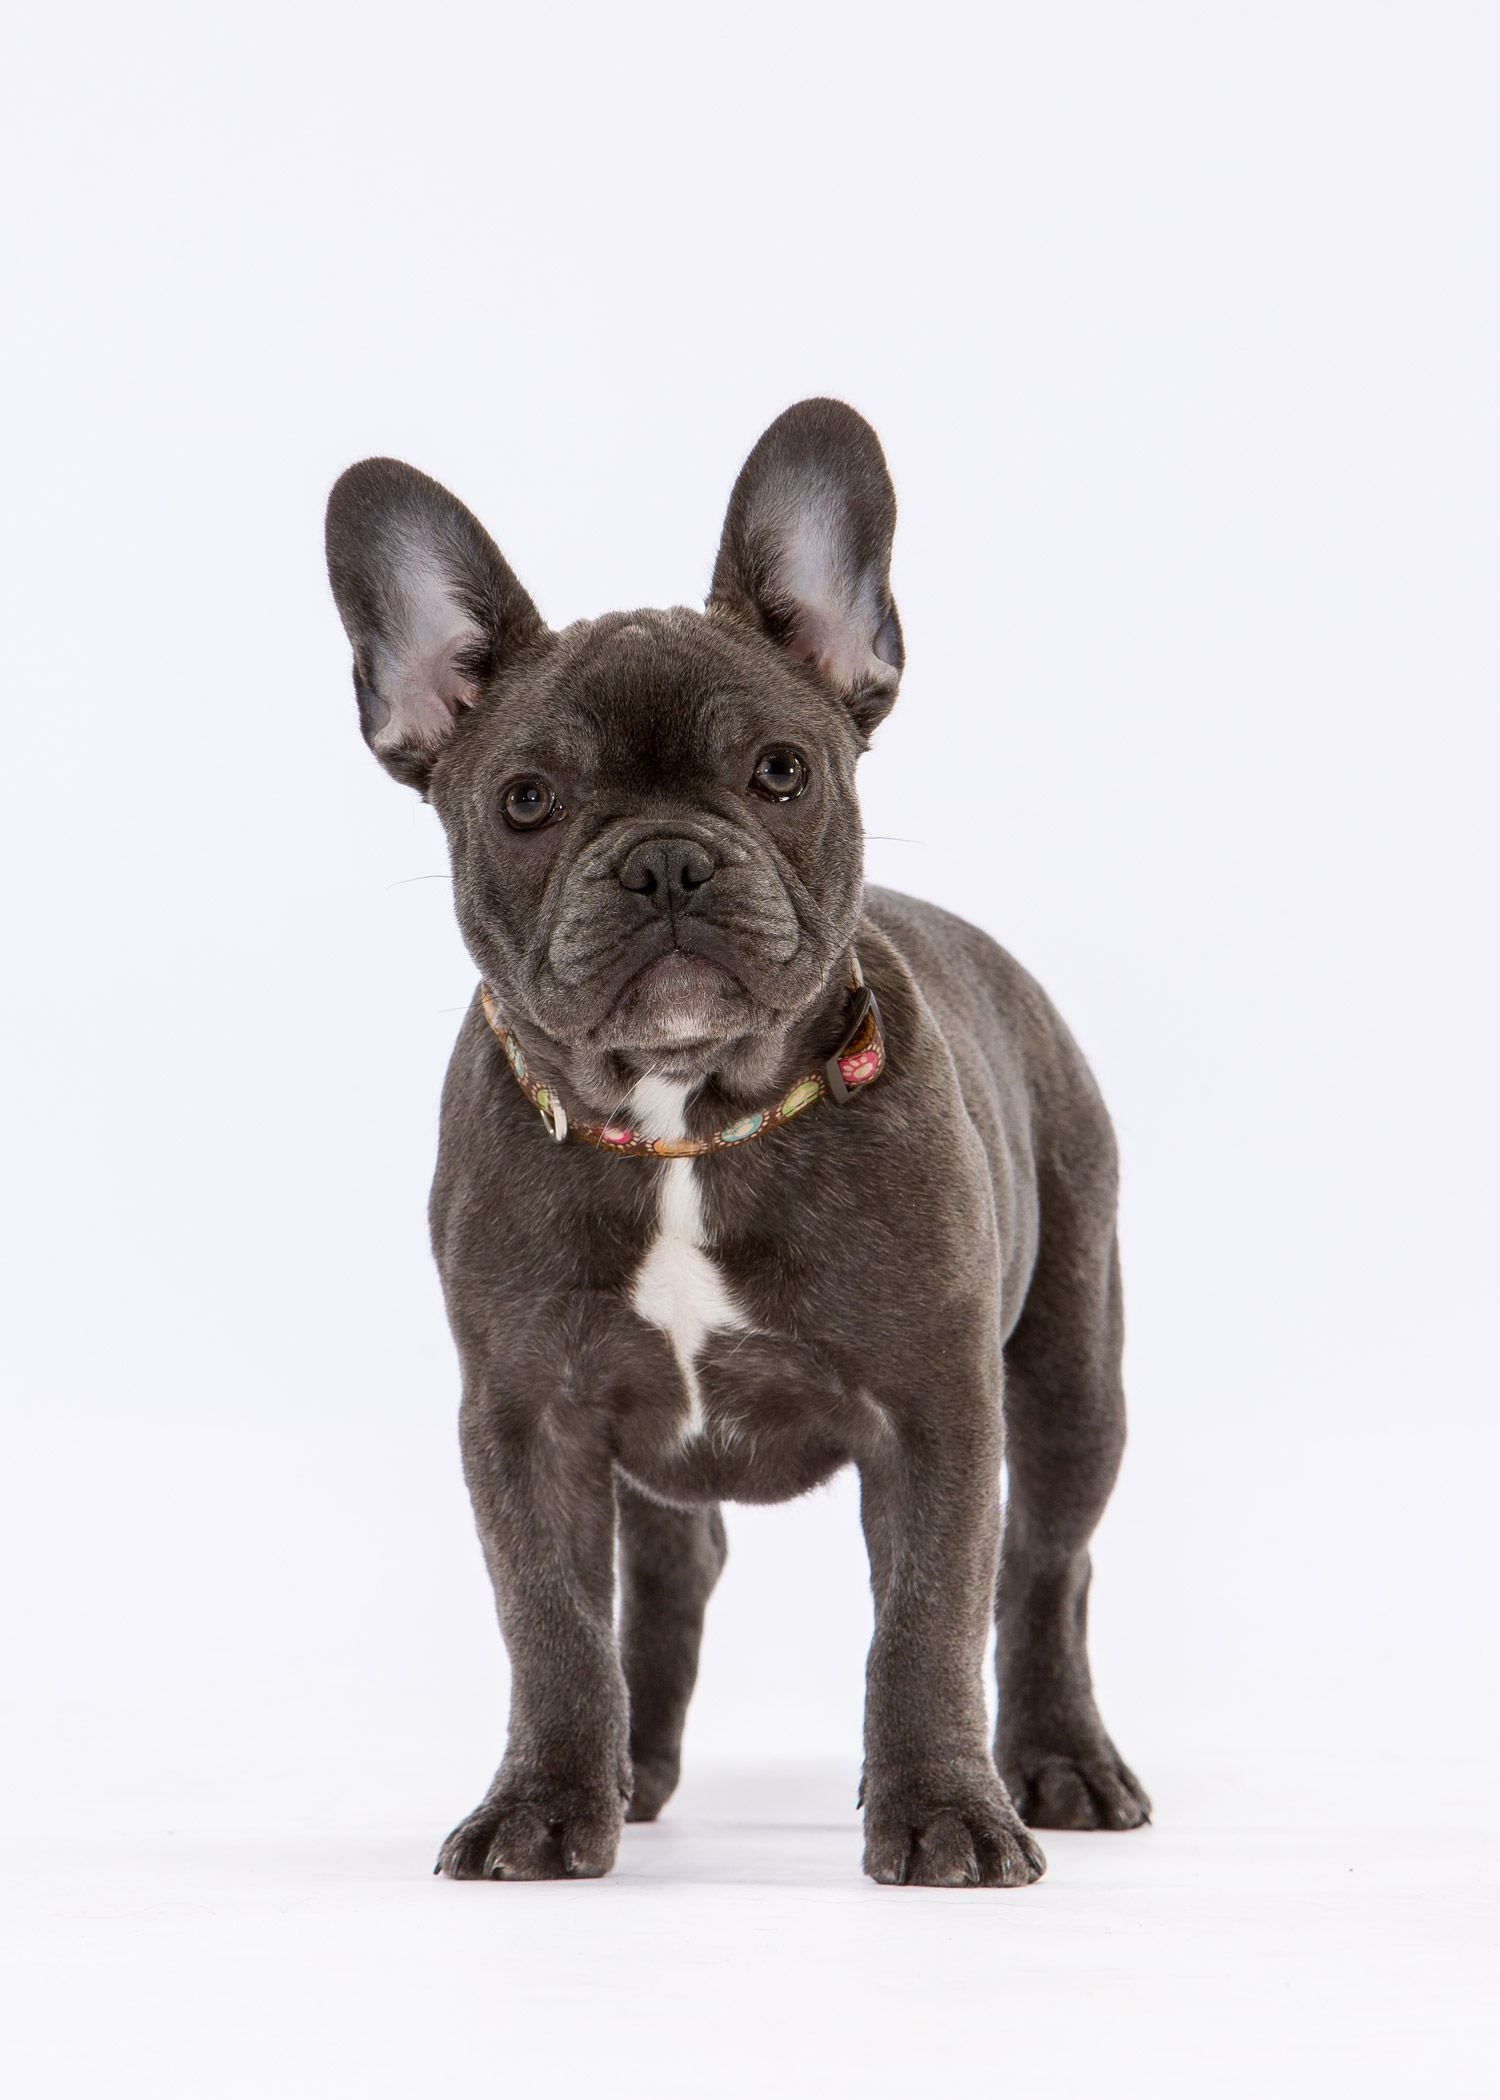 Daily Dose May 19 2019 Frenchie Friend French Bulldog Puppy